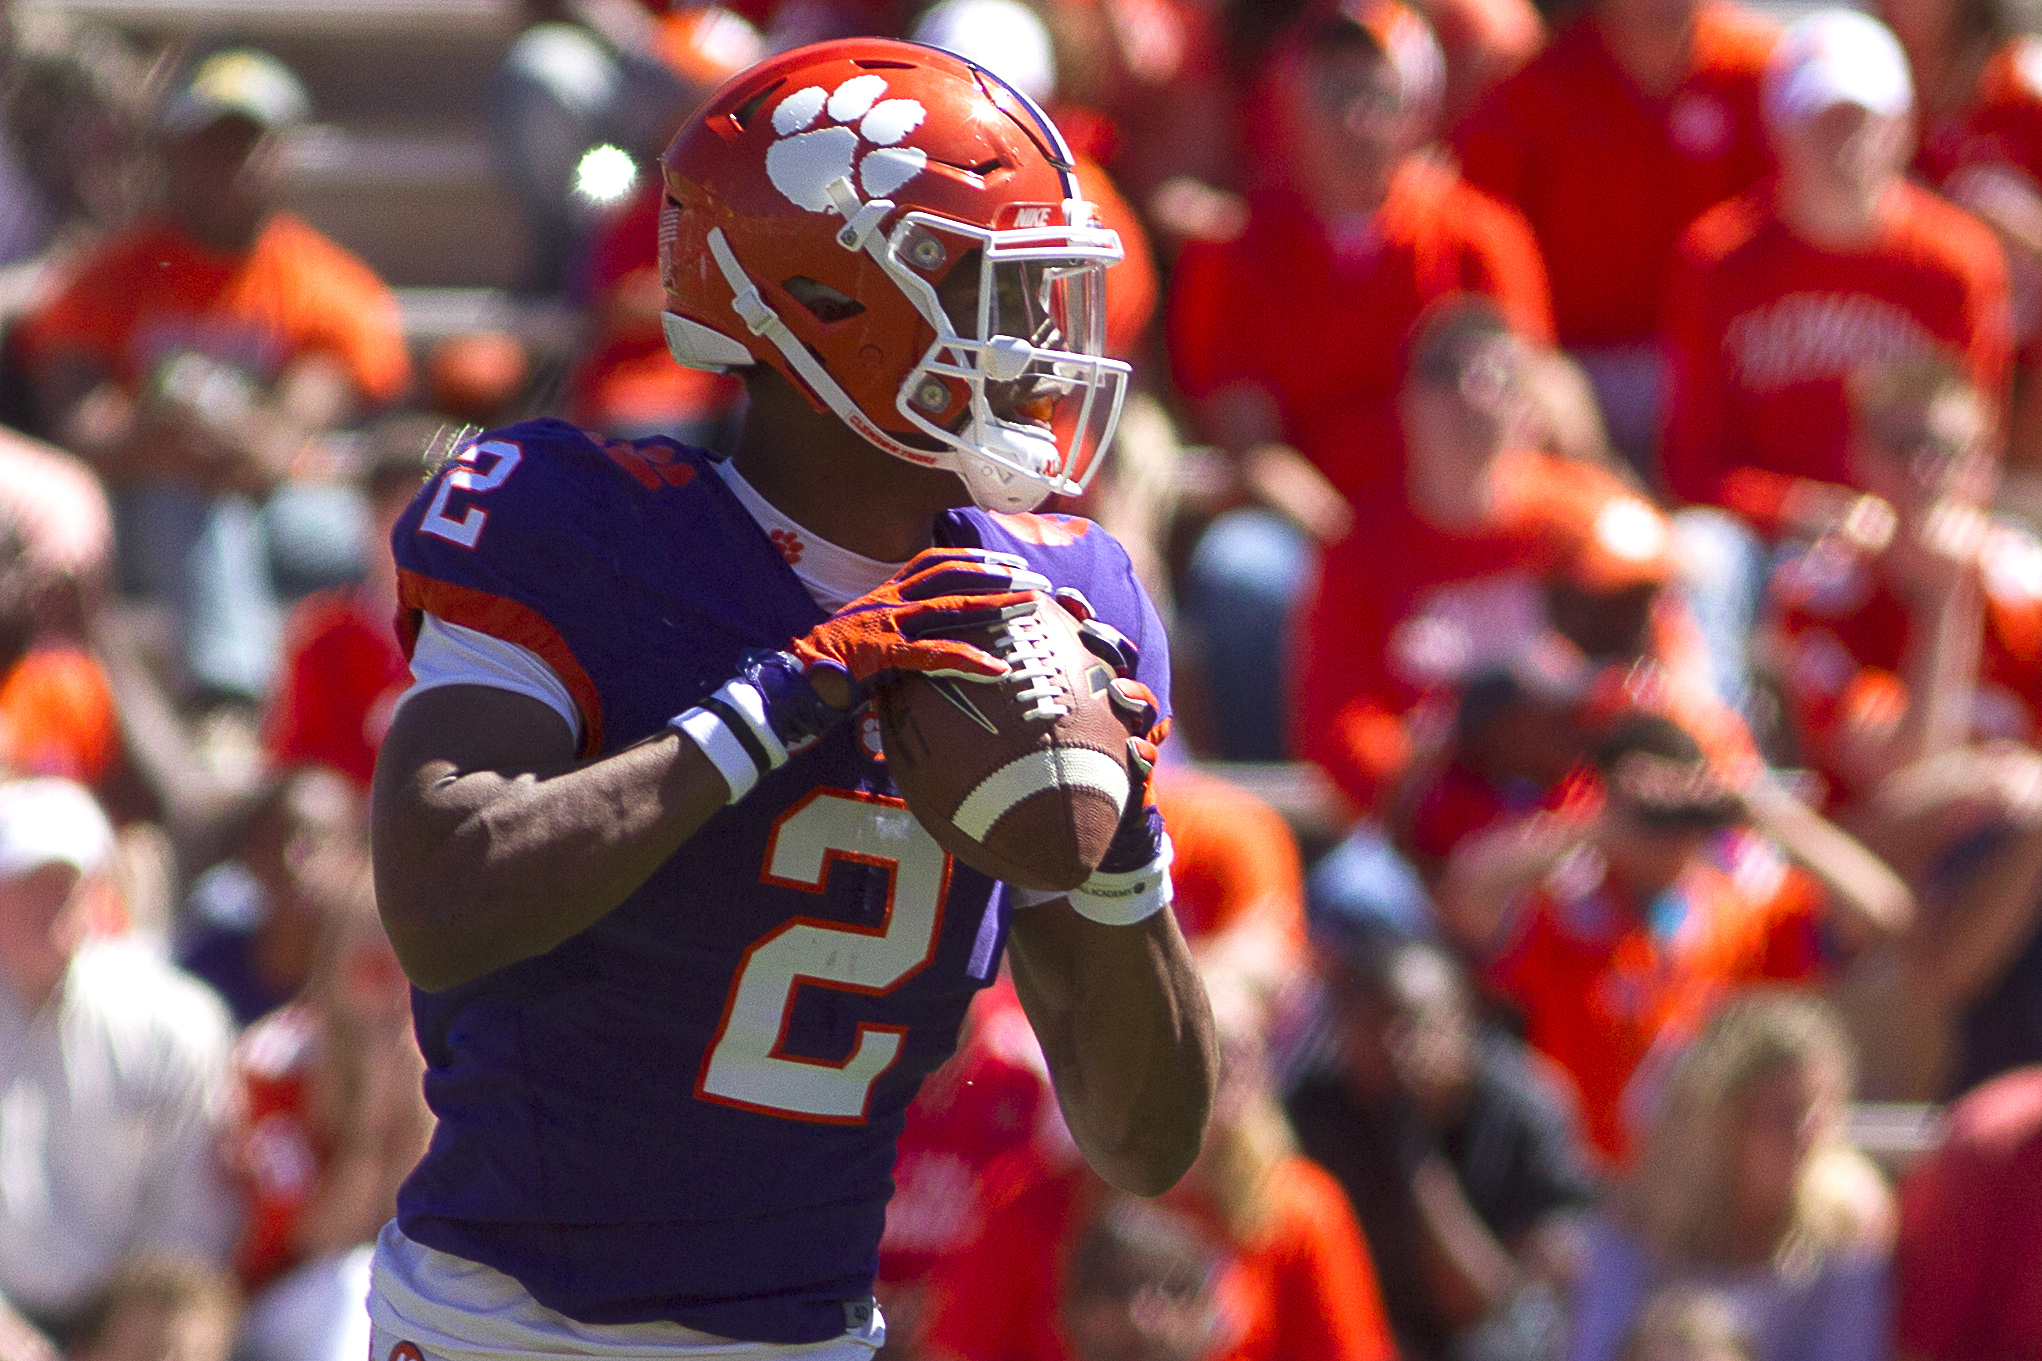 clemson football spring tigers bryant kelly quarterback game history quarterbacks today ncaa sports joshua usa sc season shows tough watson